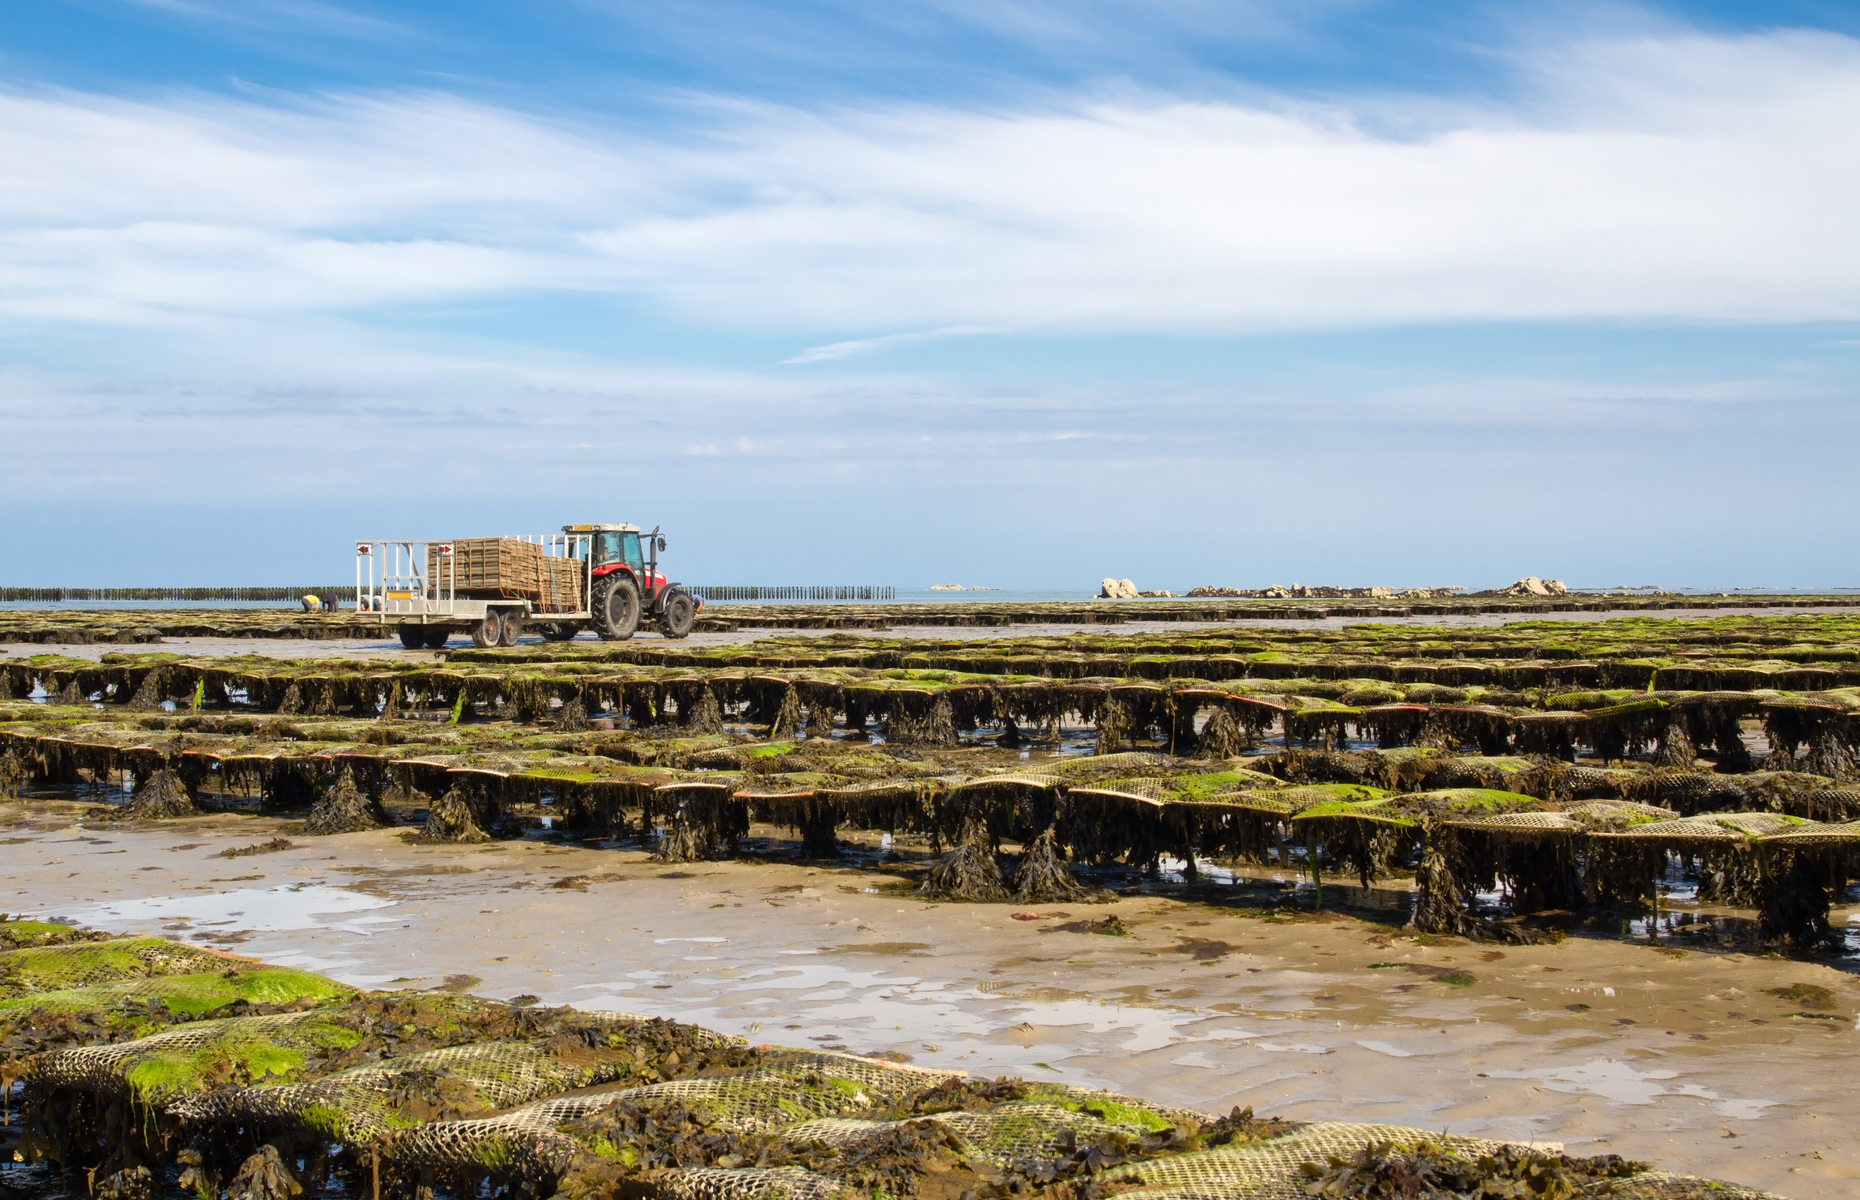 Oyster beds